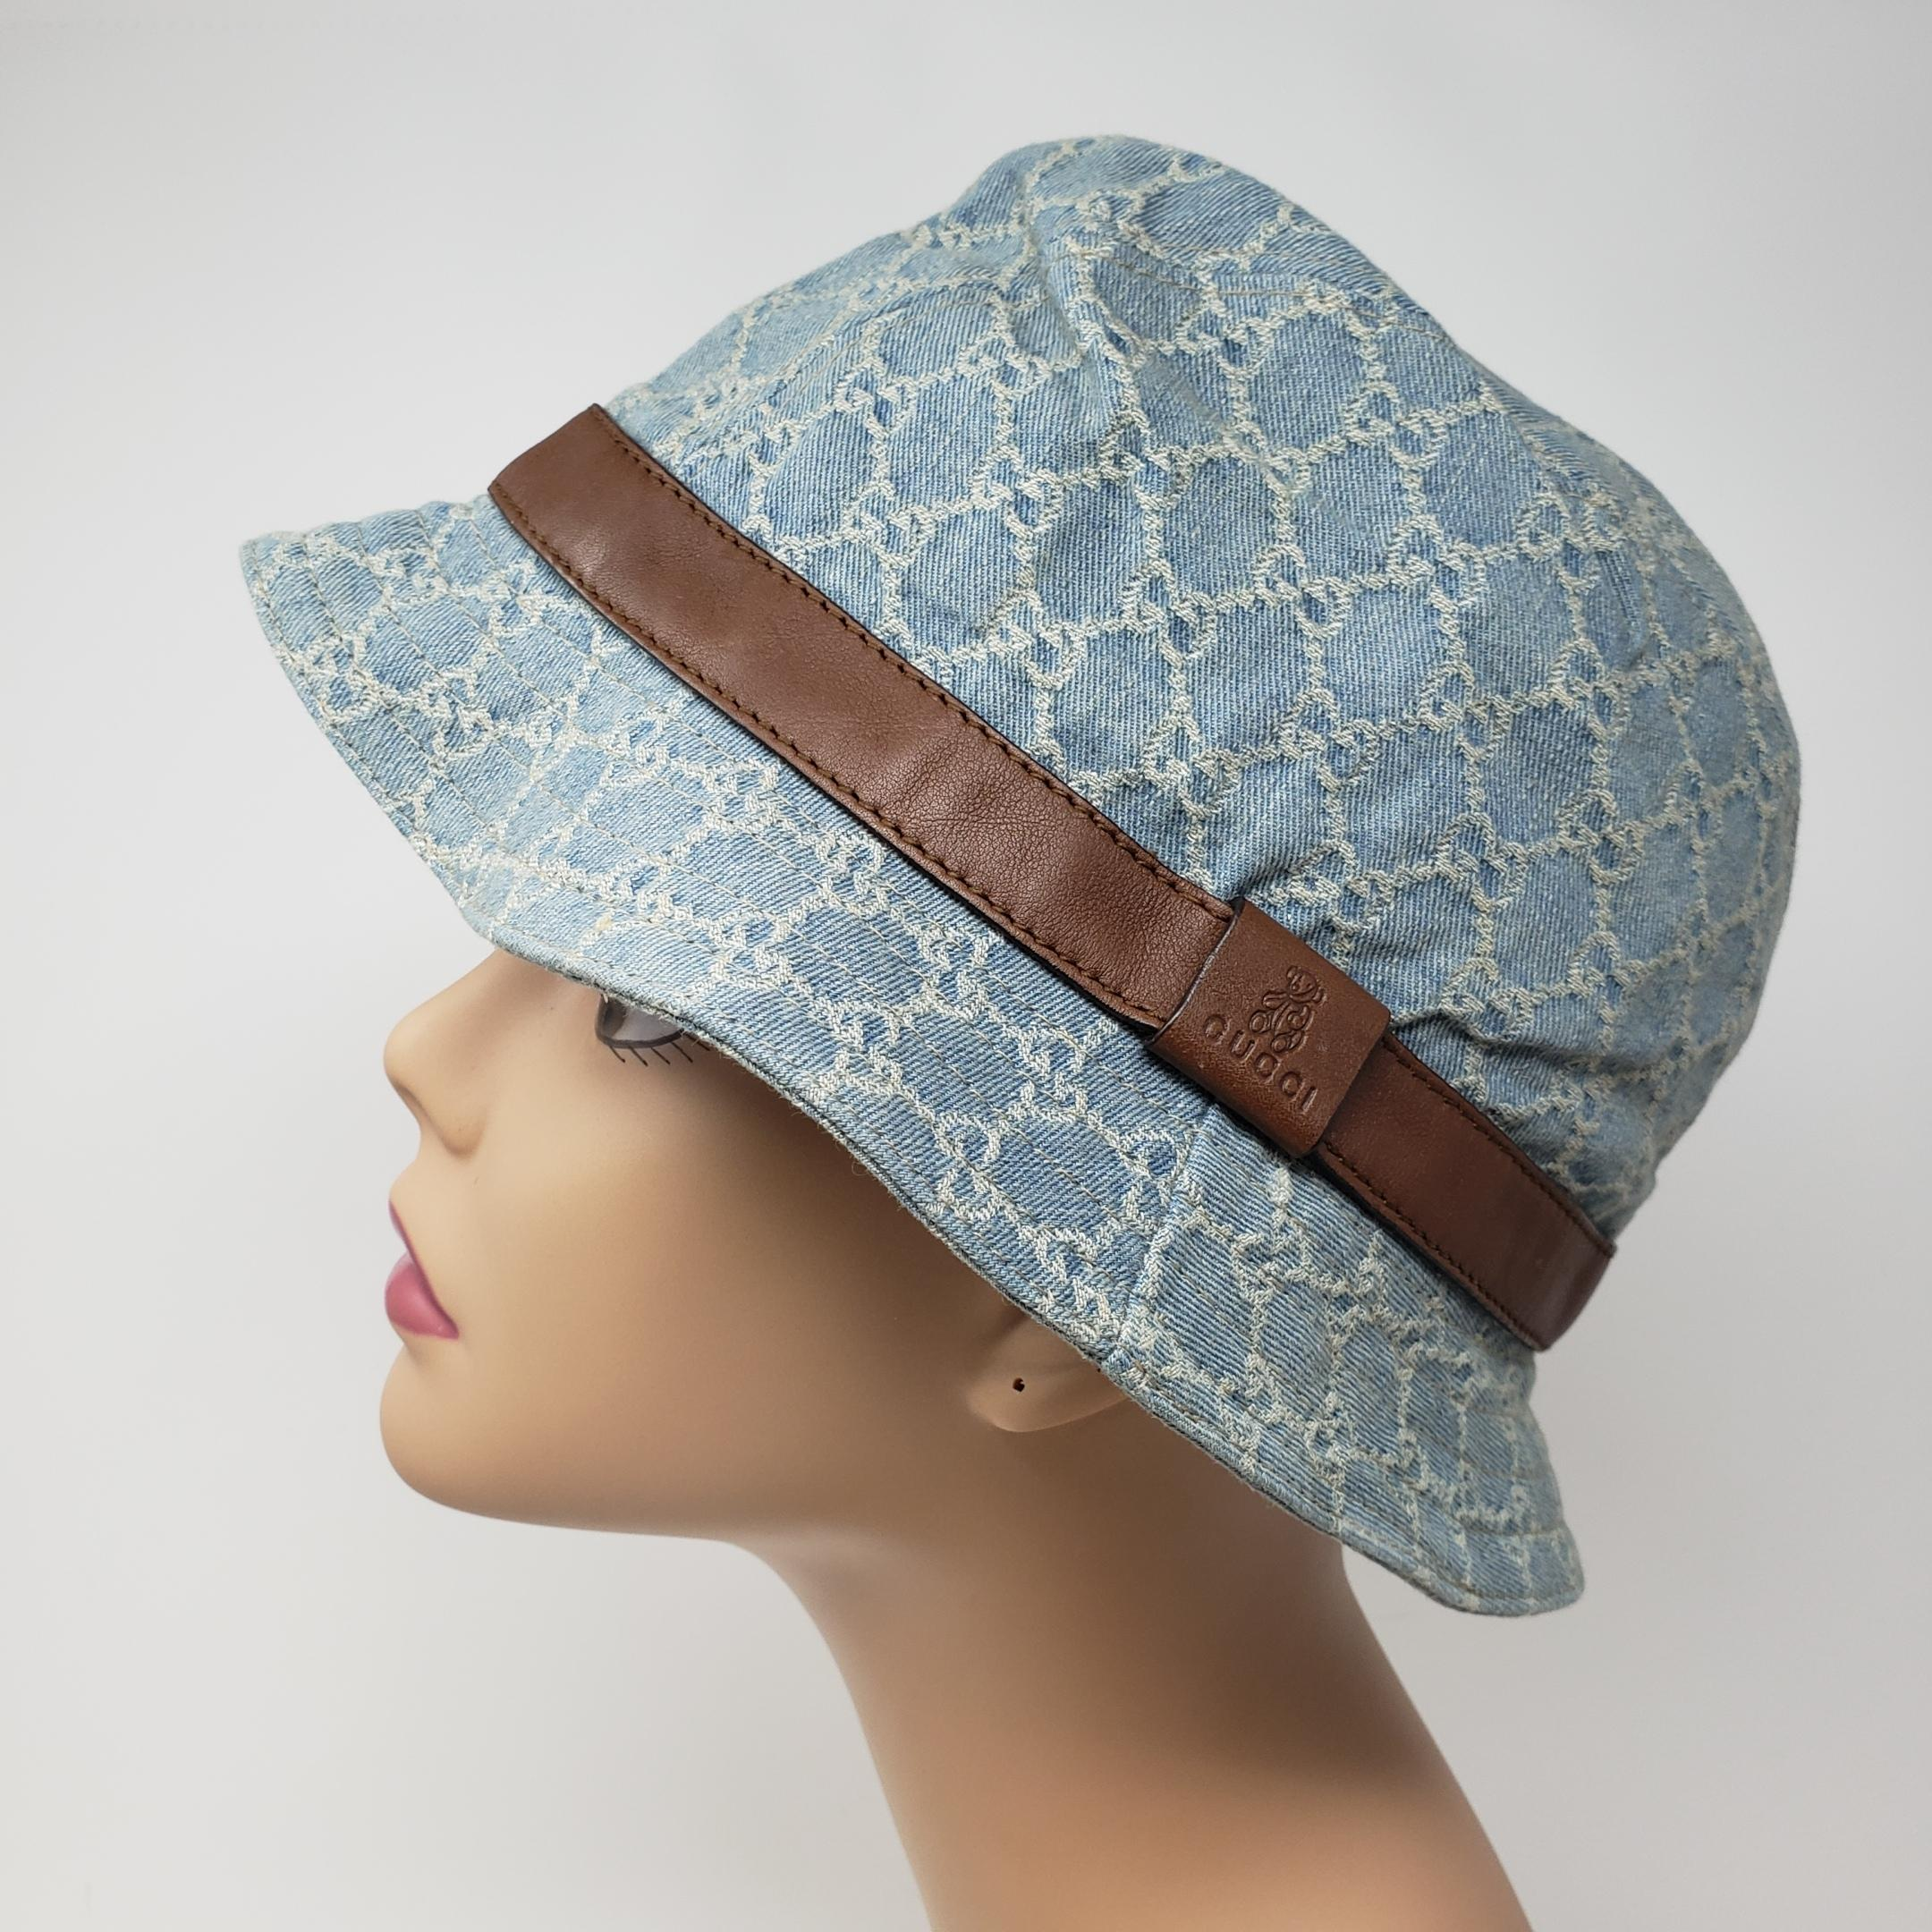 a8e4f6a3c27 Gucci blue brown web woven bucket hat tradesy jpg 960x960 Gucci bucket hat  blue